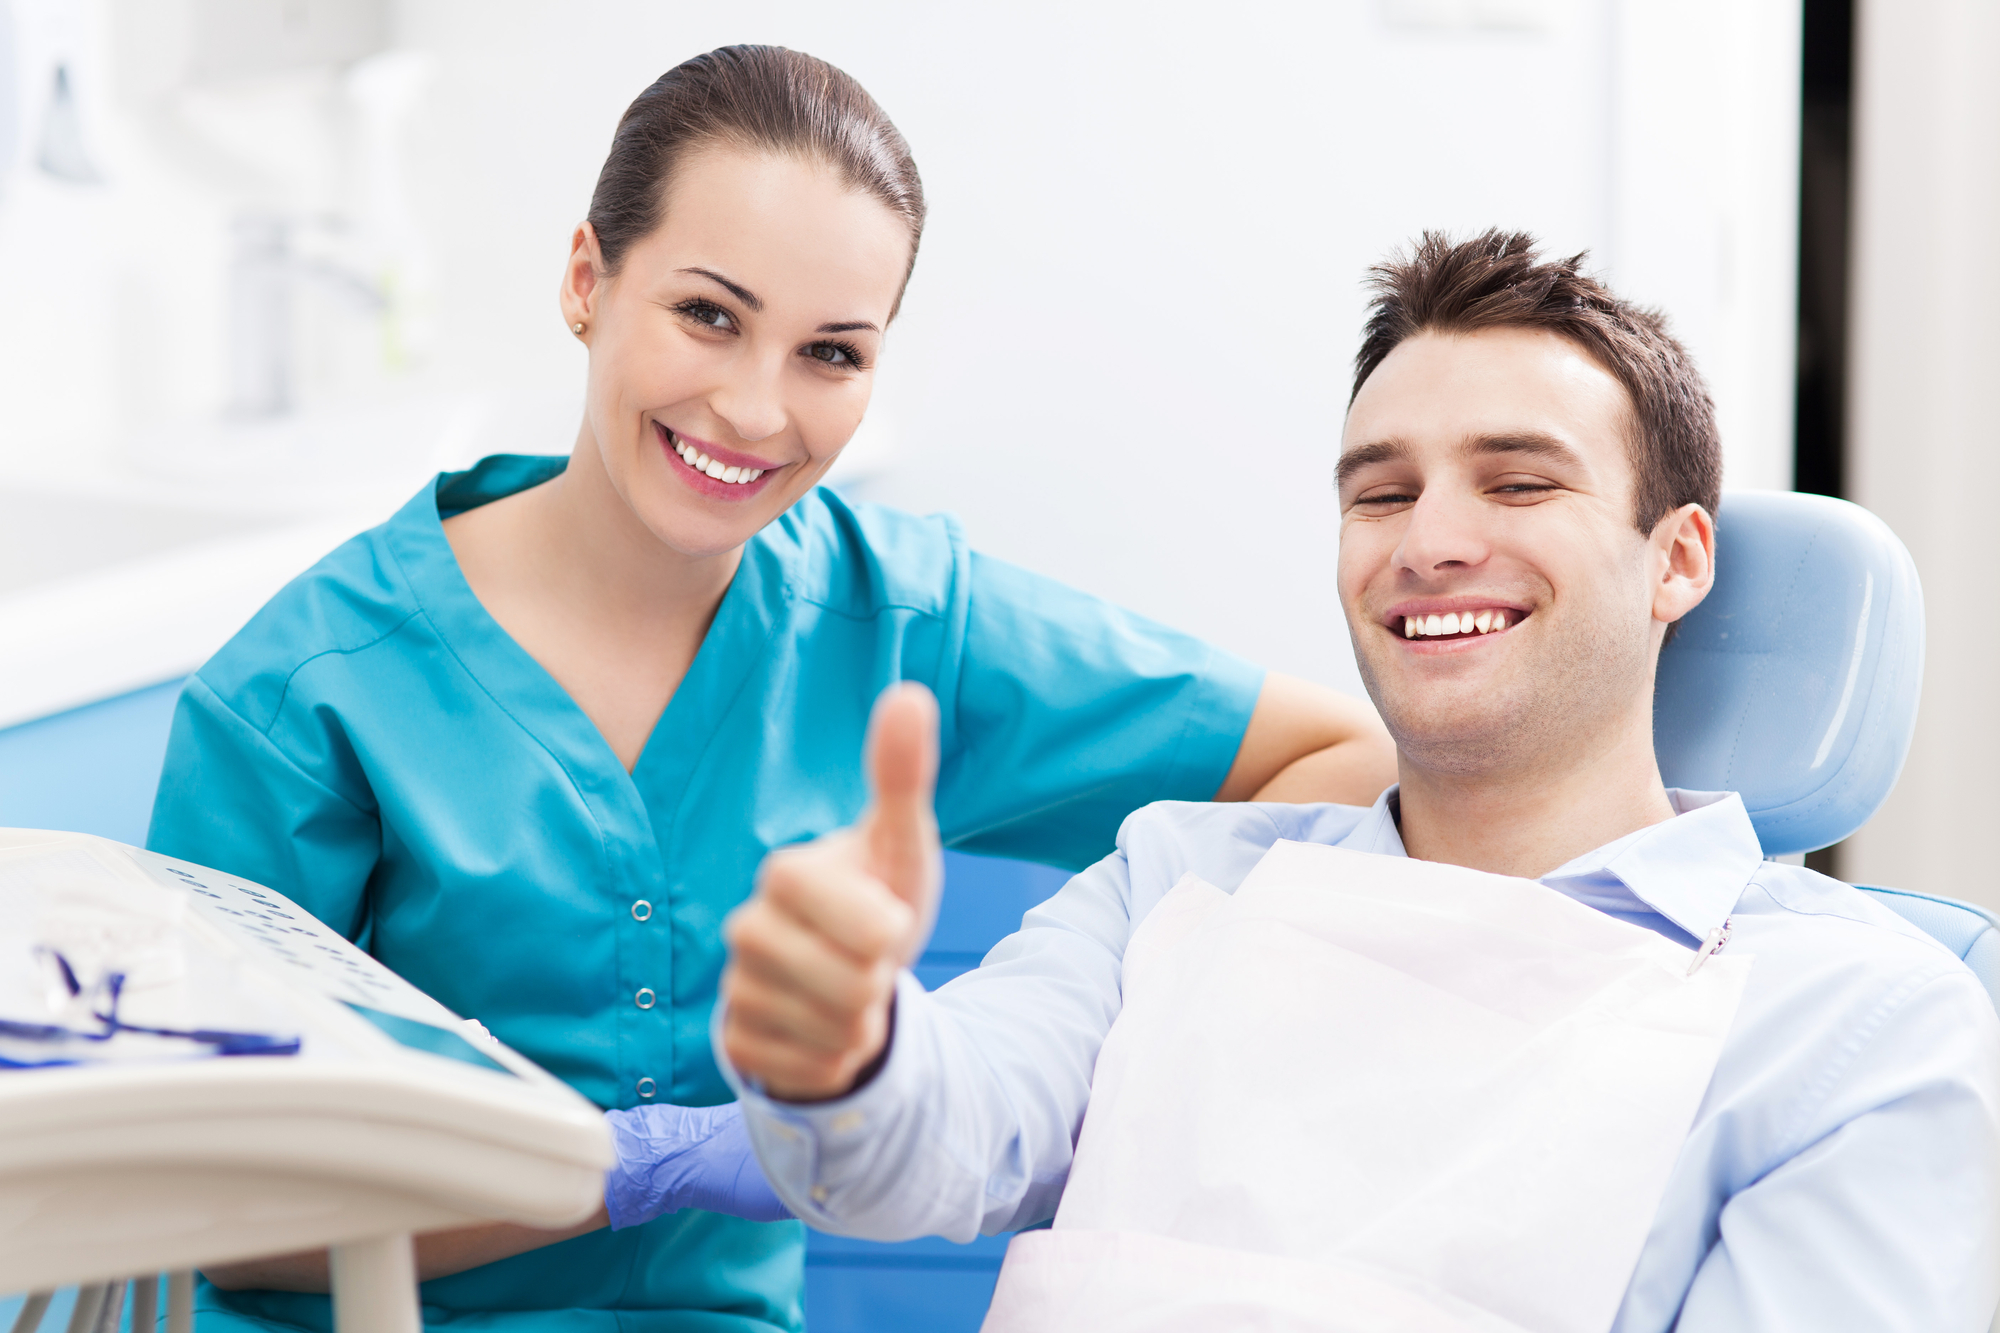 who is the best cosmetic dentist in boynton beach?